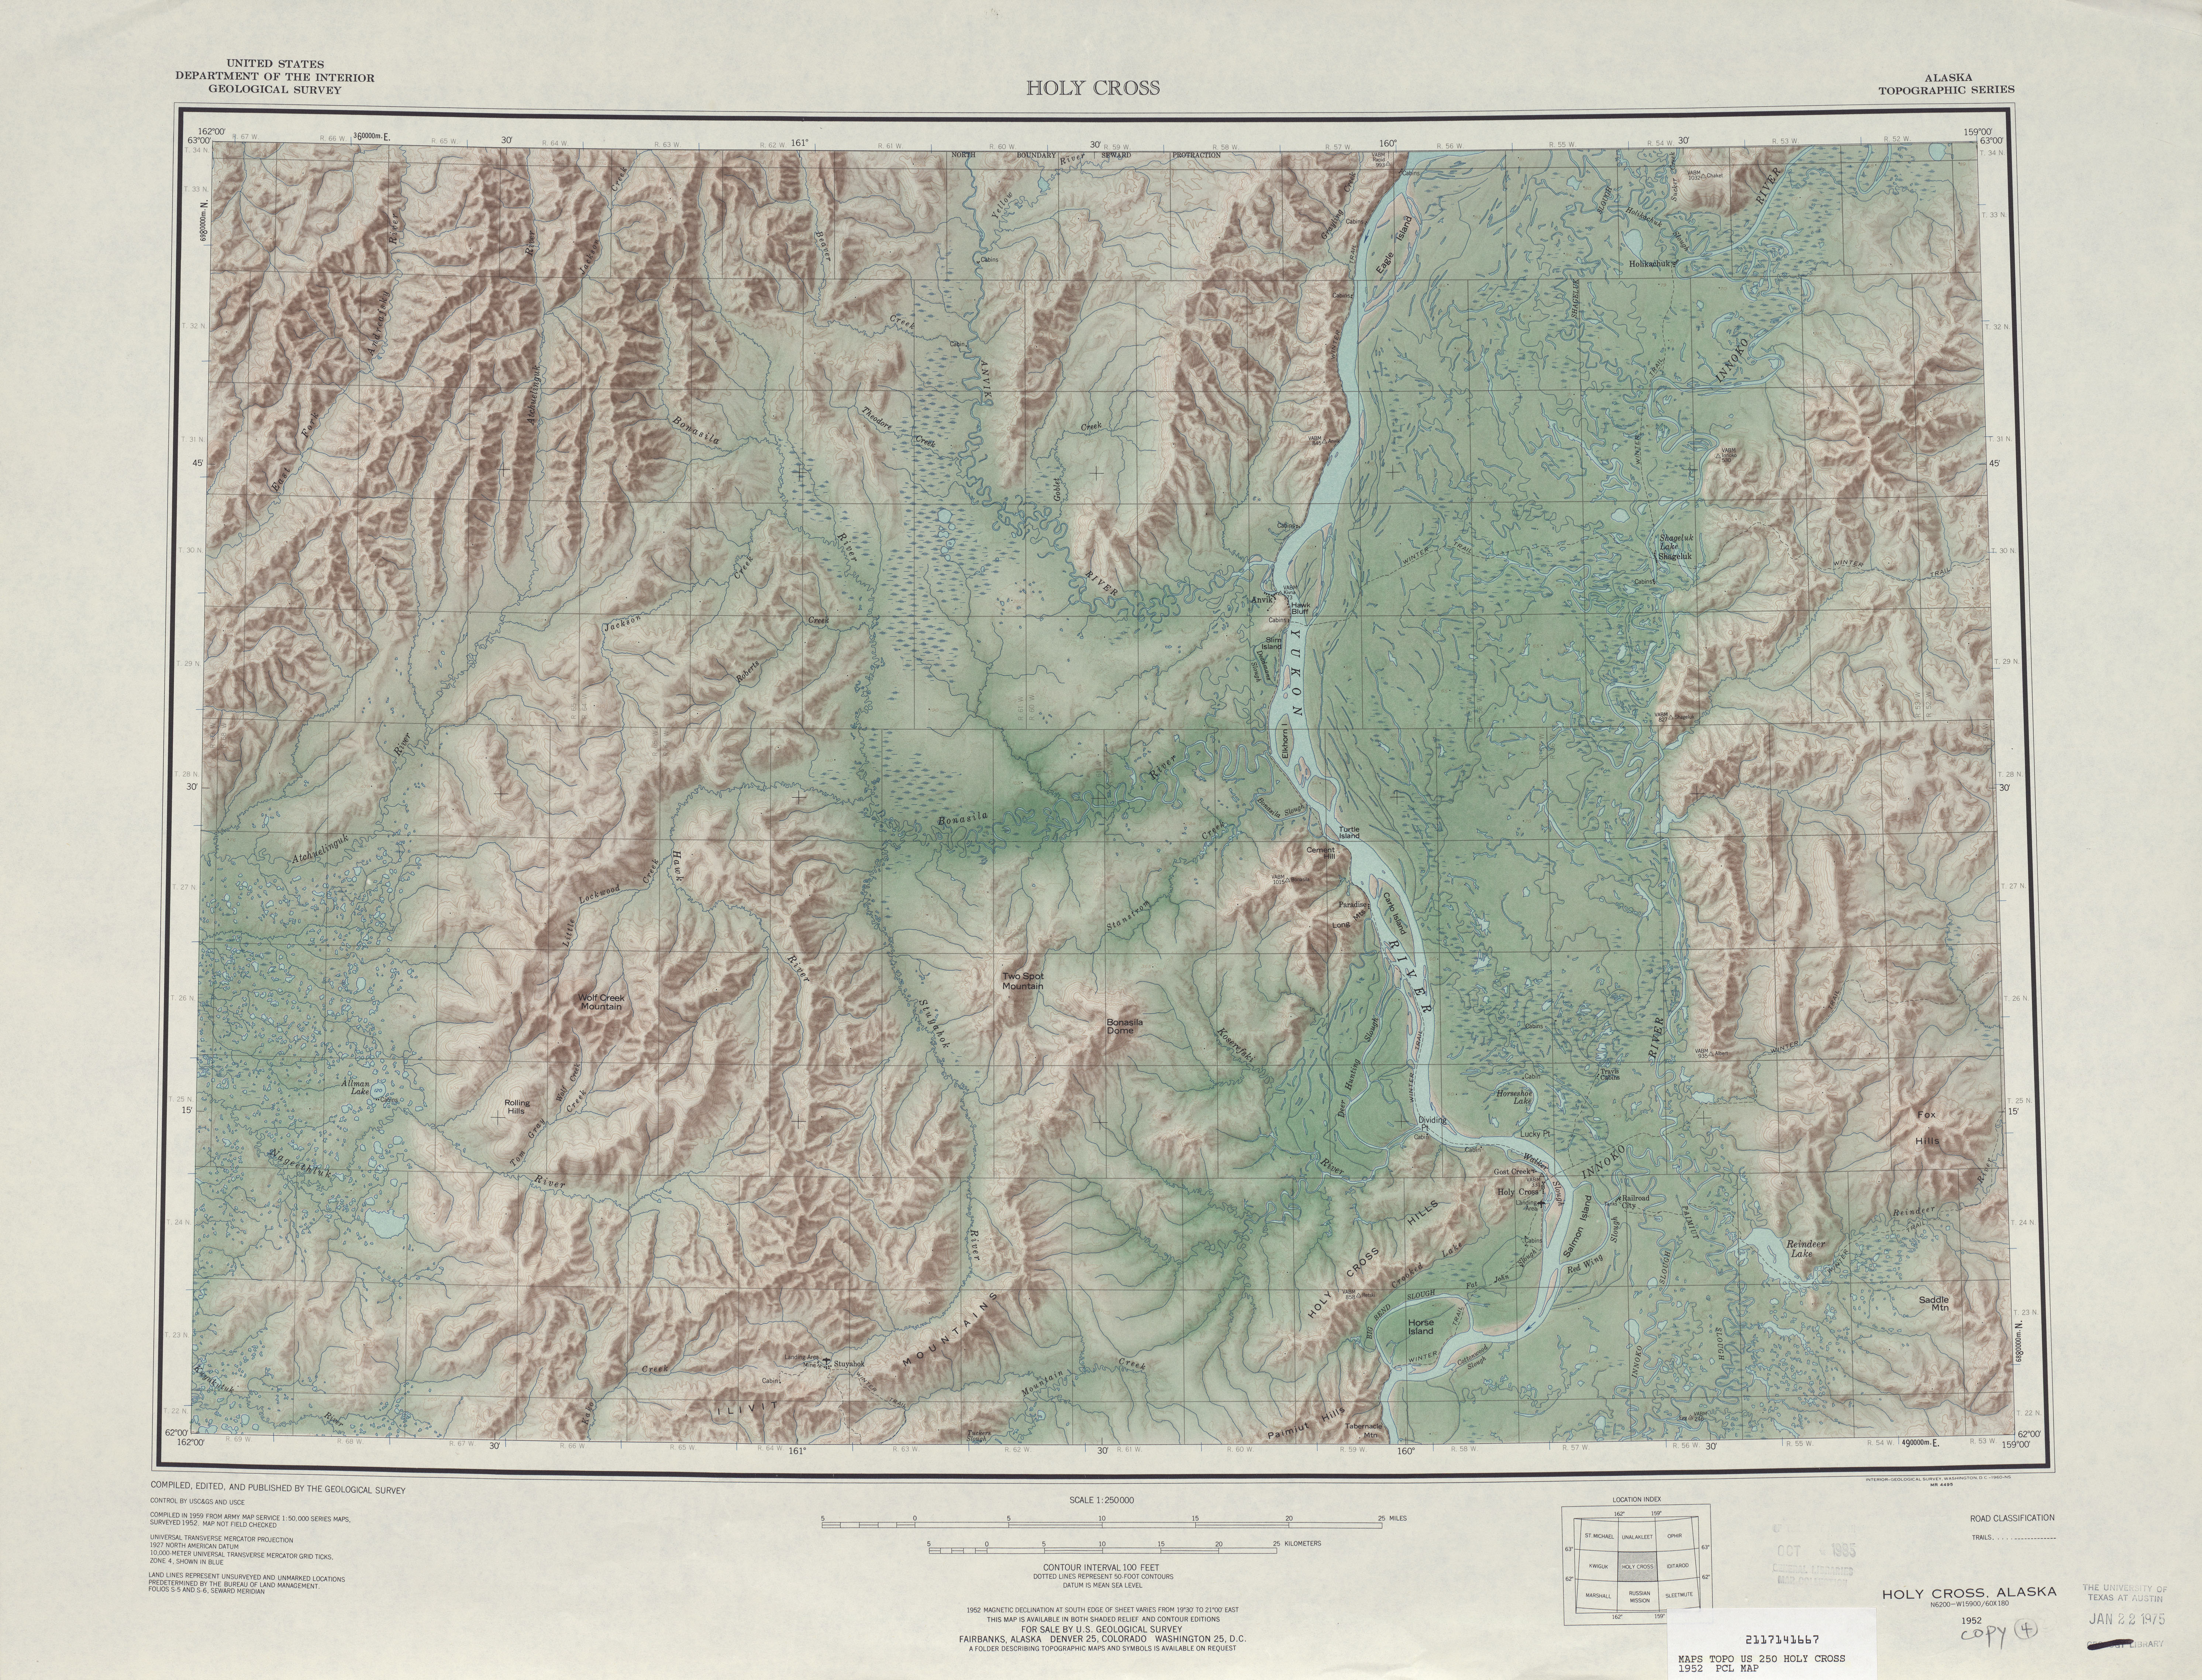 Holy Cross Shaded Relief Map Sheet, United States 1952